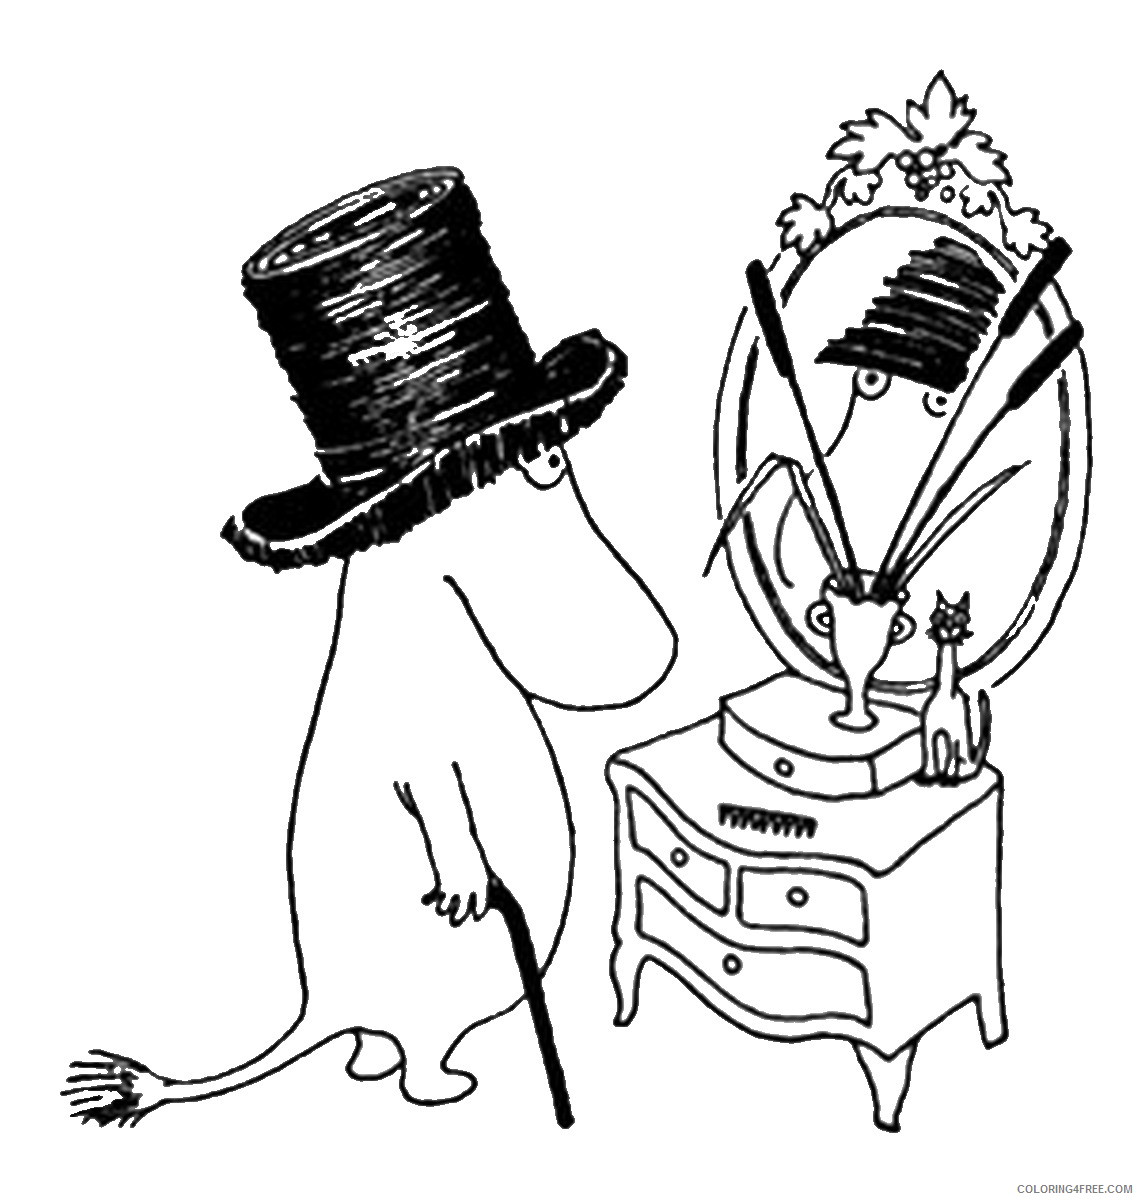 The Moomins Coloring Pages Cartoons moomins_cl_02 Printable 2020 6486 Coloring4free